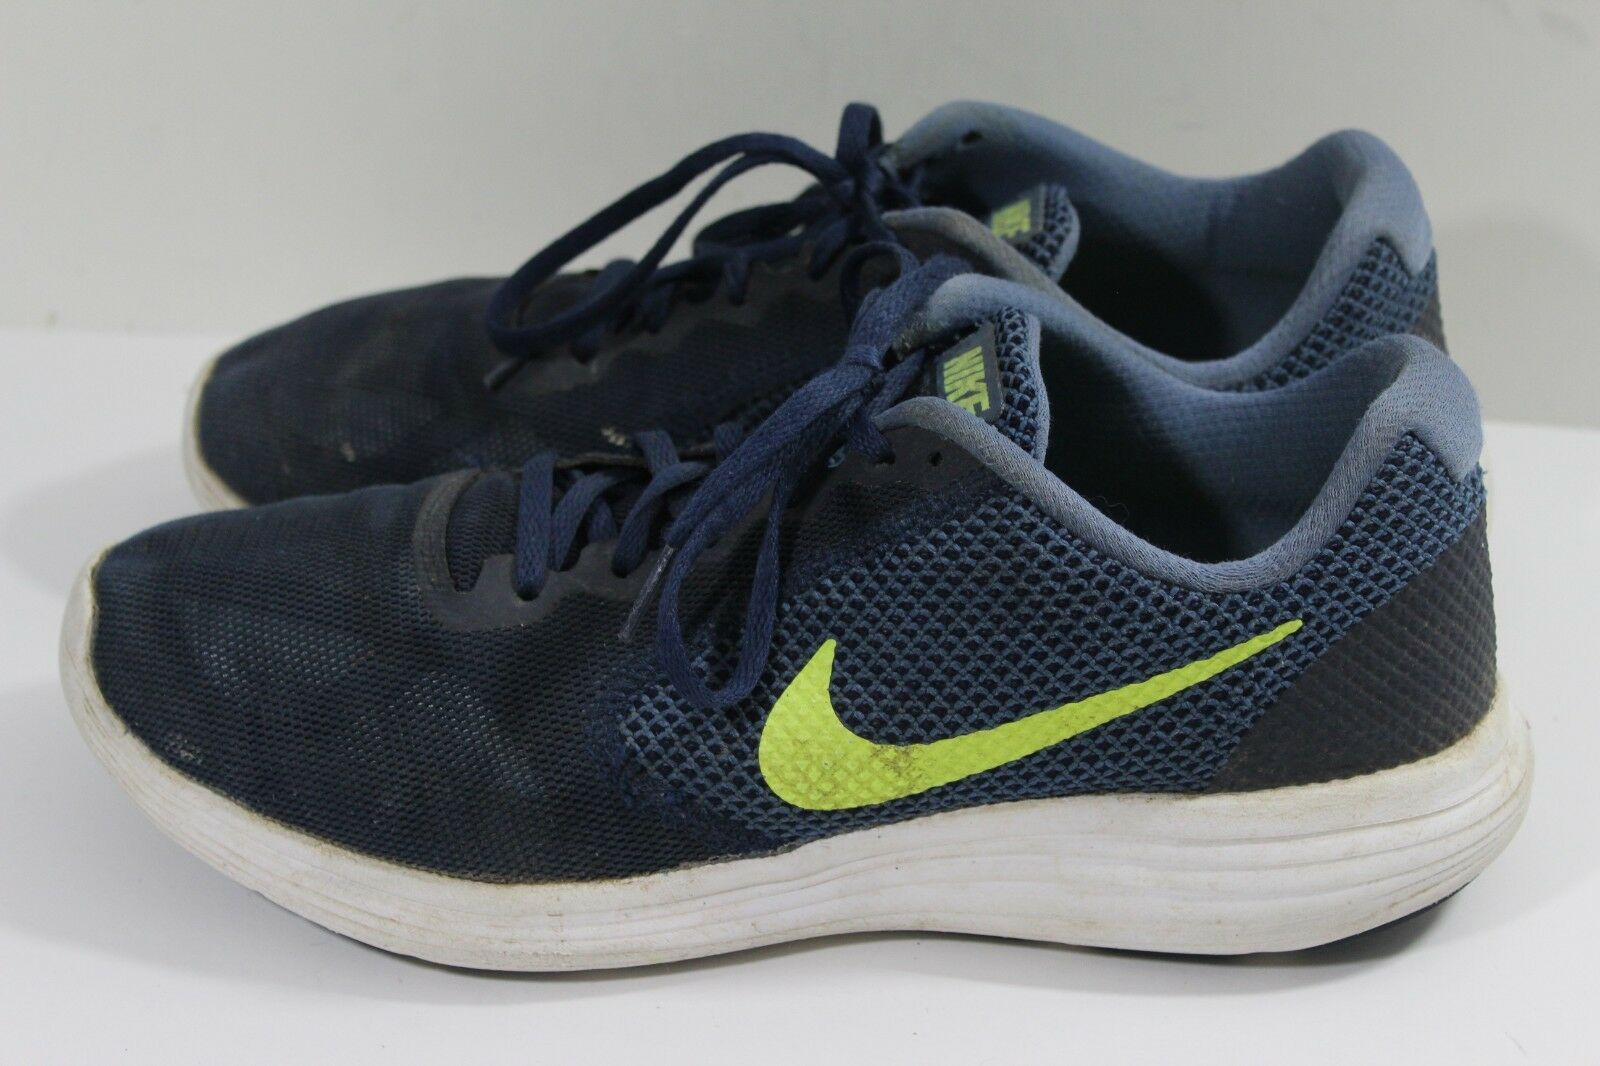 Mens Blue And Lime Green Nike Revolution 3 Tennis Shoes, Comfortable  New shoes for men and women, limited time discount